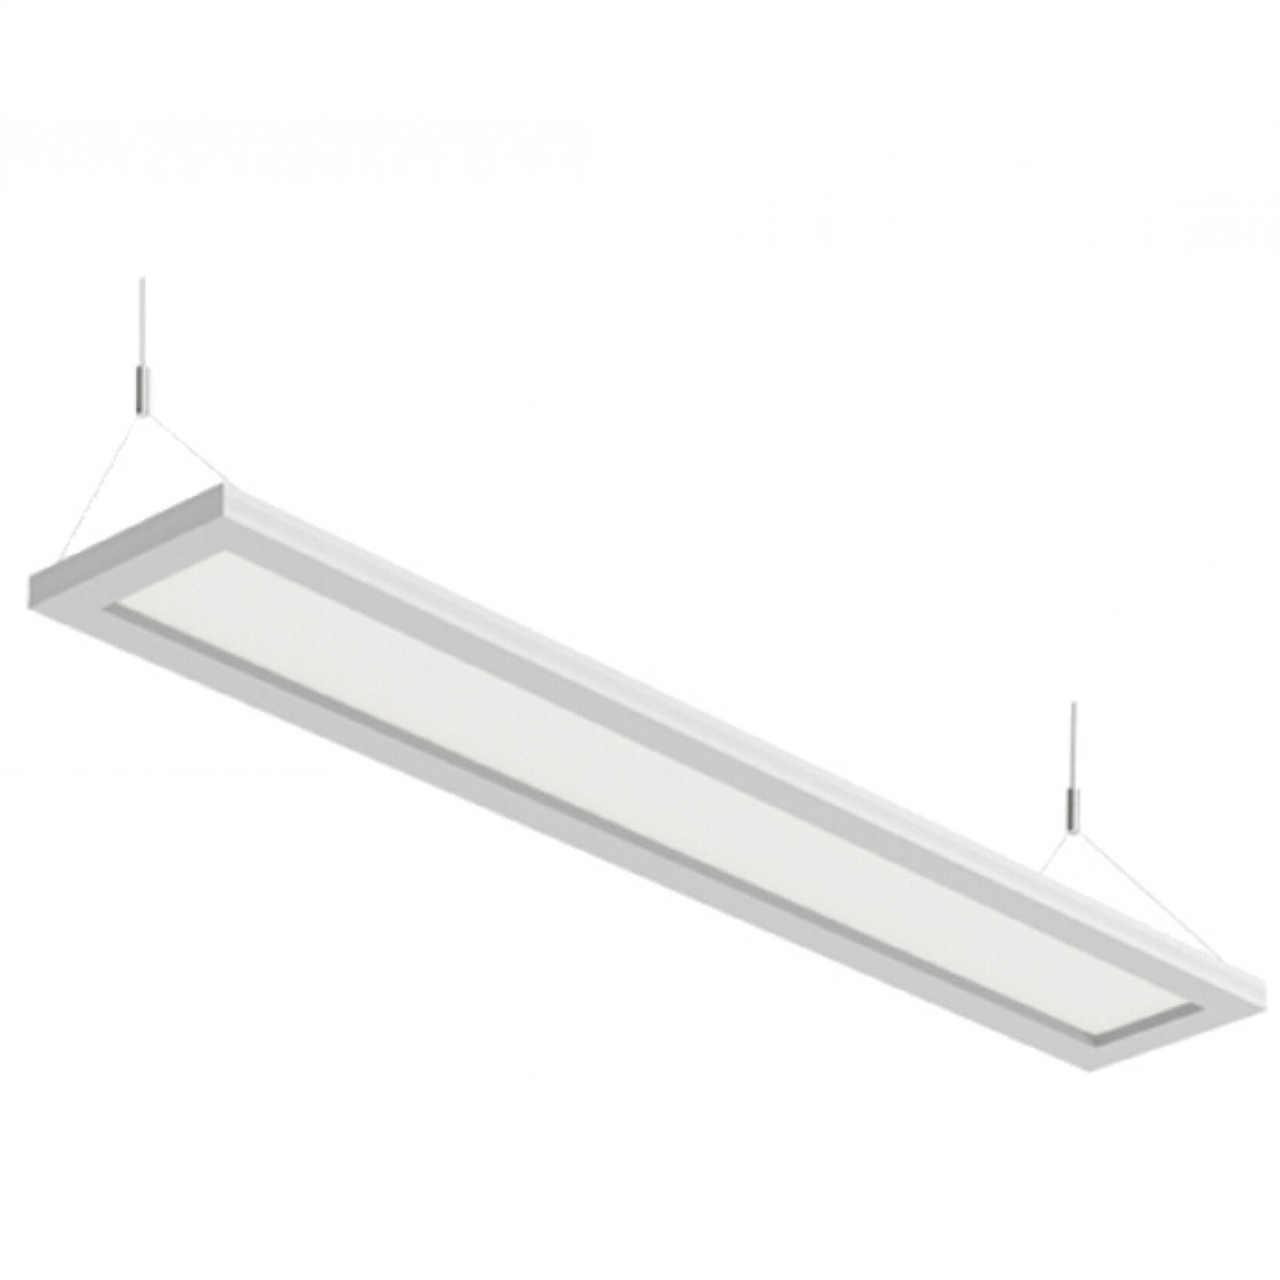 Panel Light Hanging Led Panel Direct Indirect Office Light 4ft 40w